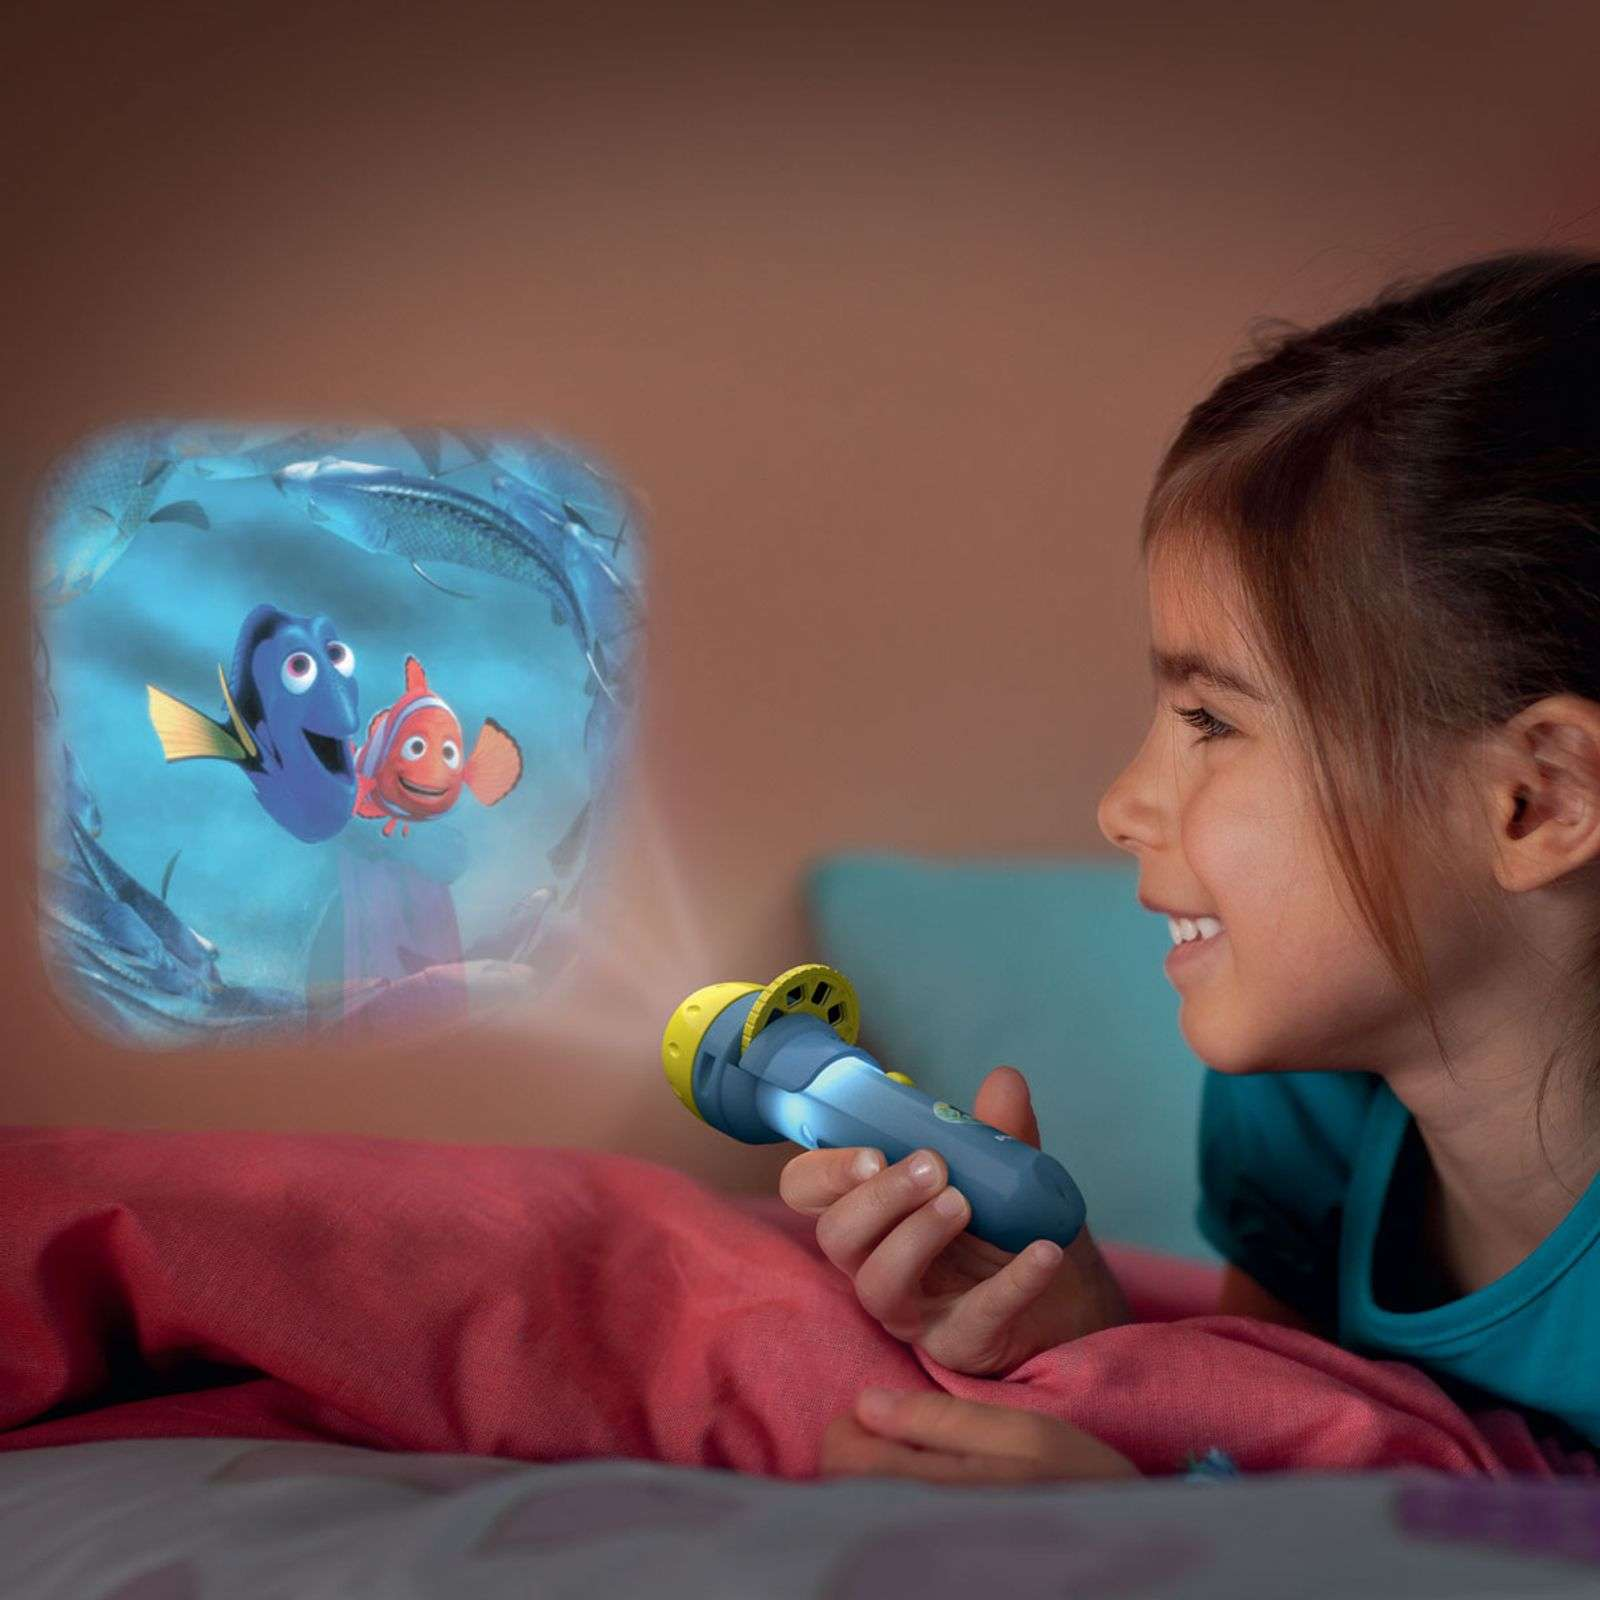 Sweet LED projector torch Finding Dory-7531823-02